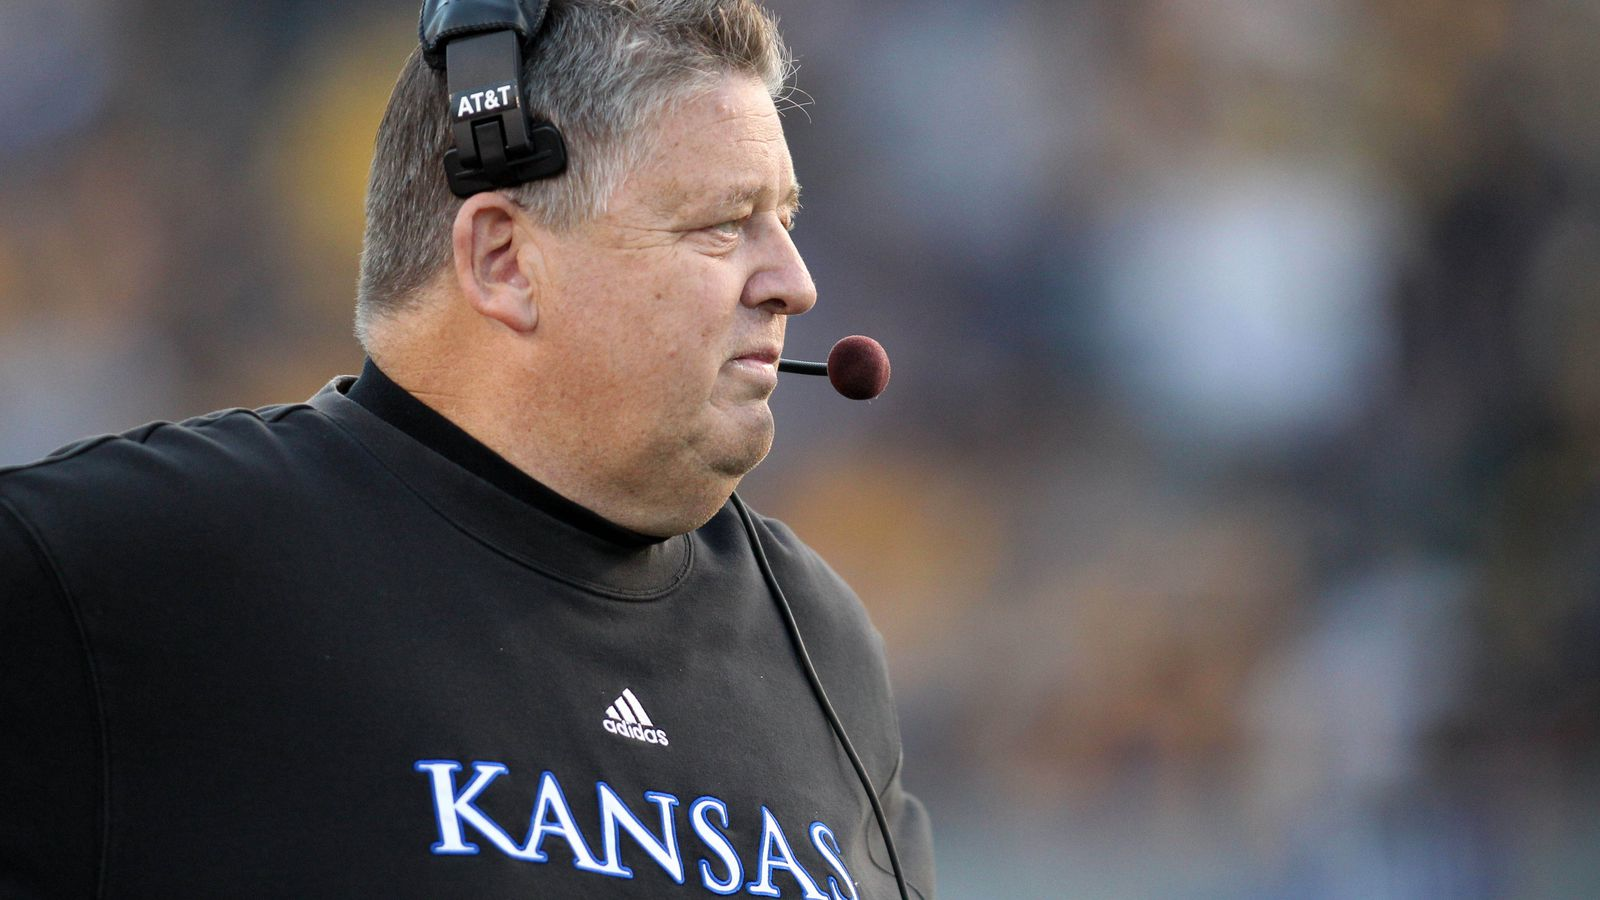 Sotu Preview >> 2013 Kansas Football Preview: Jayhawk State of the Union - Barking Carnival